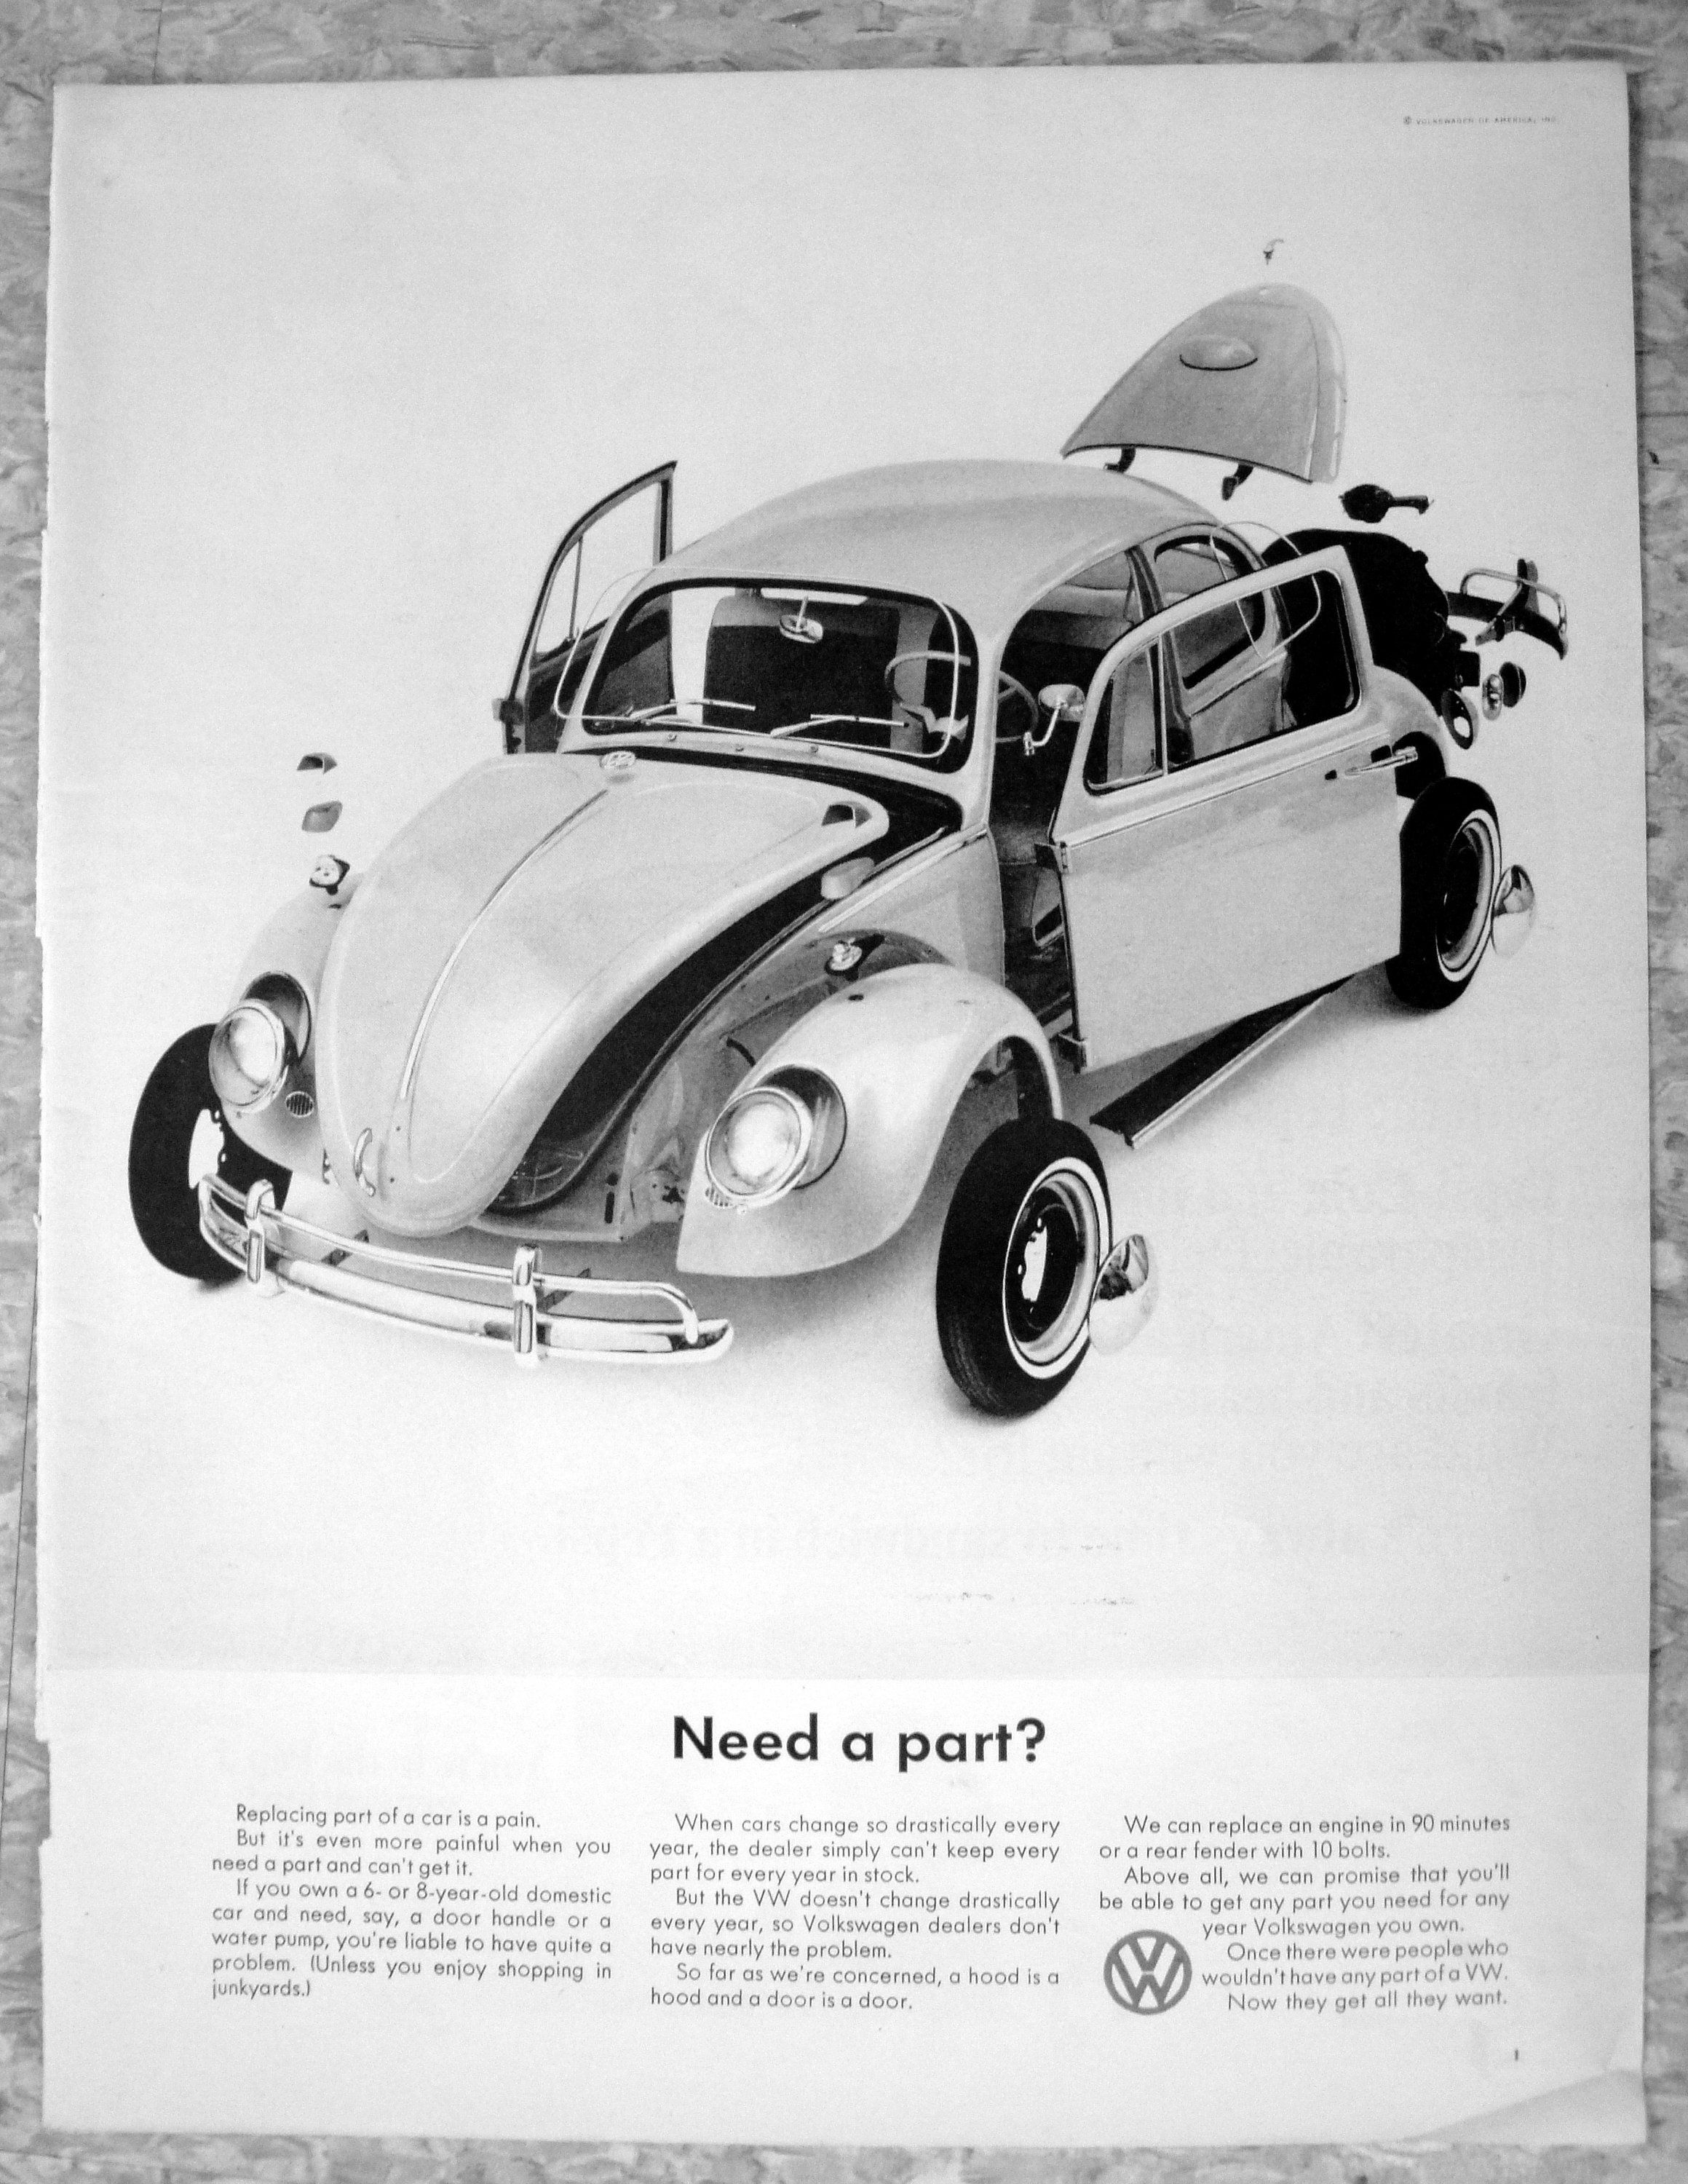 1966 Vw Beetle Bug Need A Part They Don T Change Etsy Volkswagen Beetle Vintage Volkswagen Car Print Ads